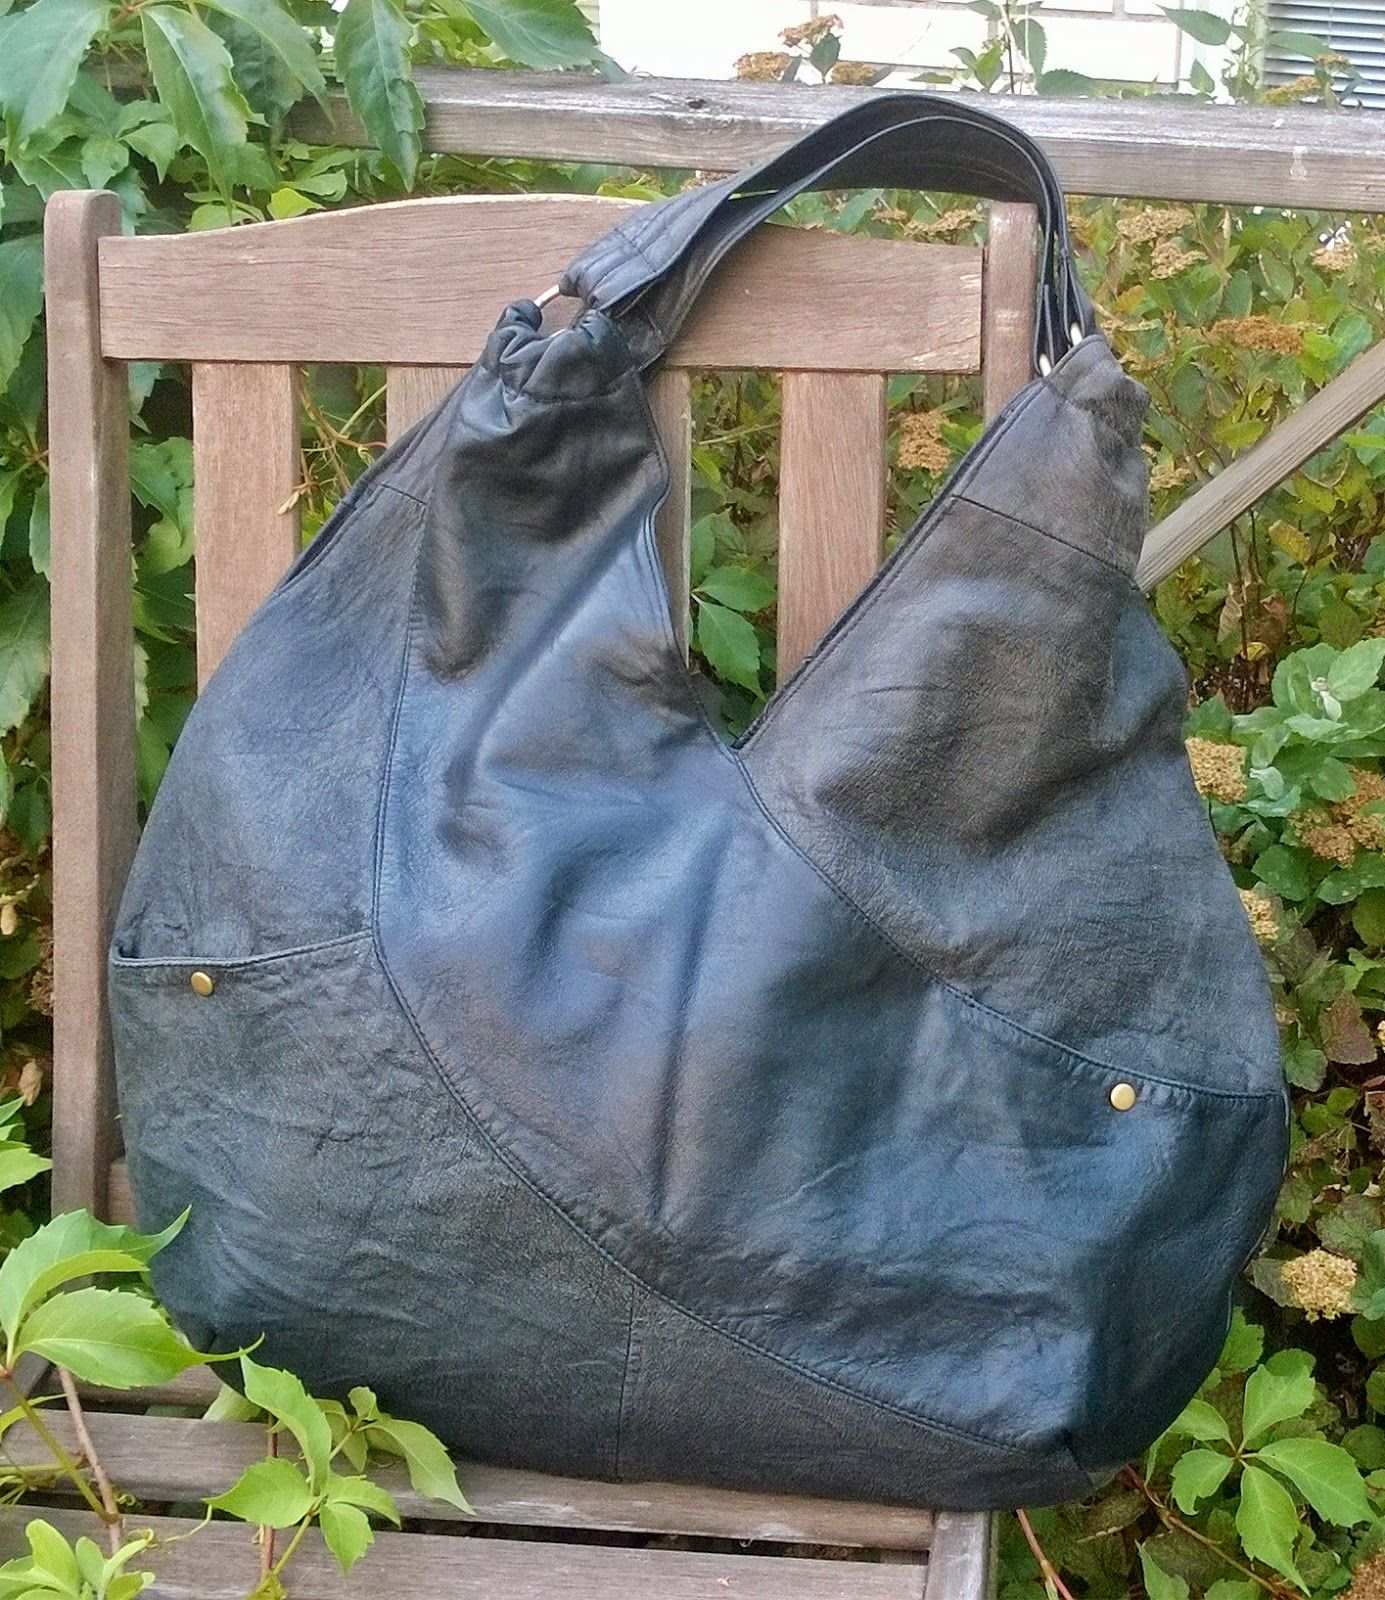 DIY hobo bag from recycled leather - Kulkurin kassi kierrätysnahasta.